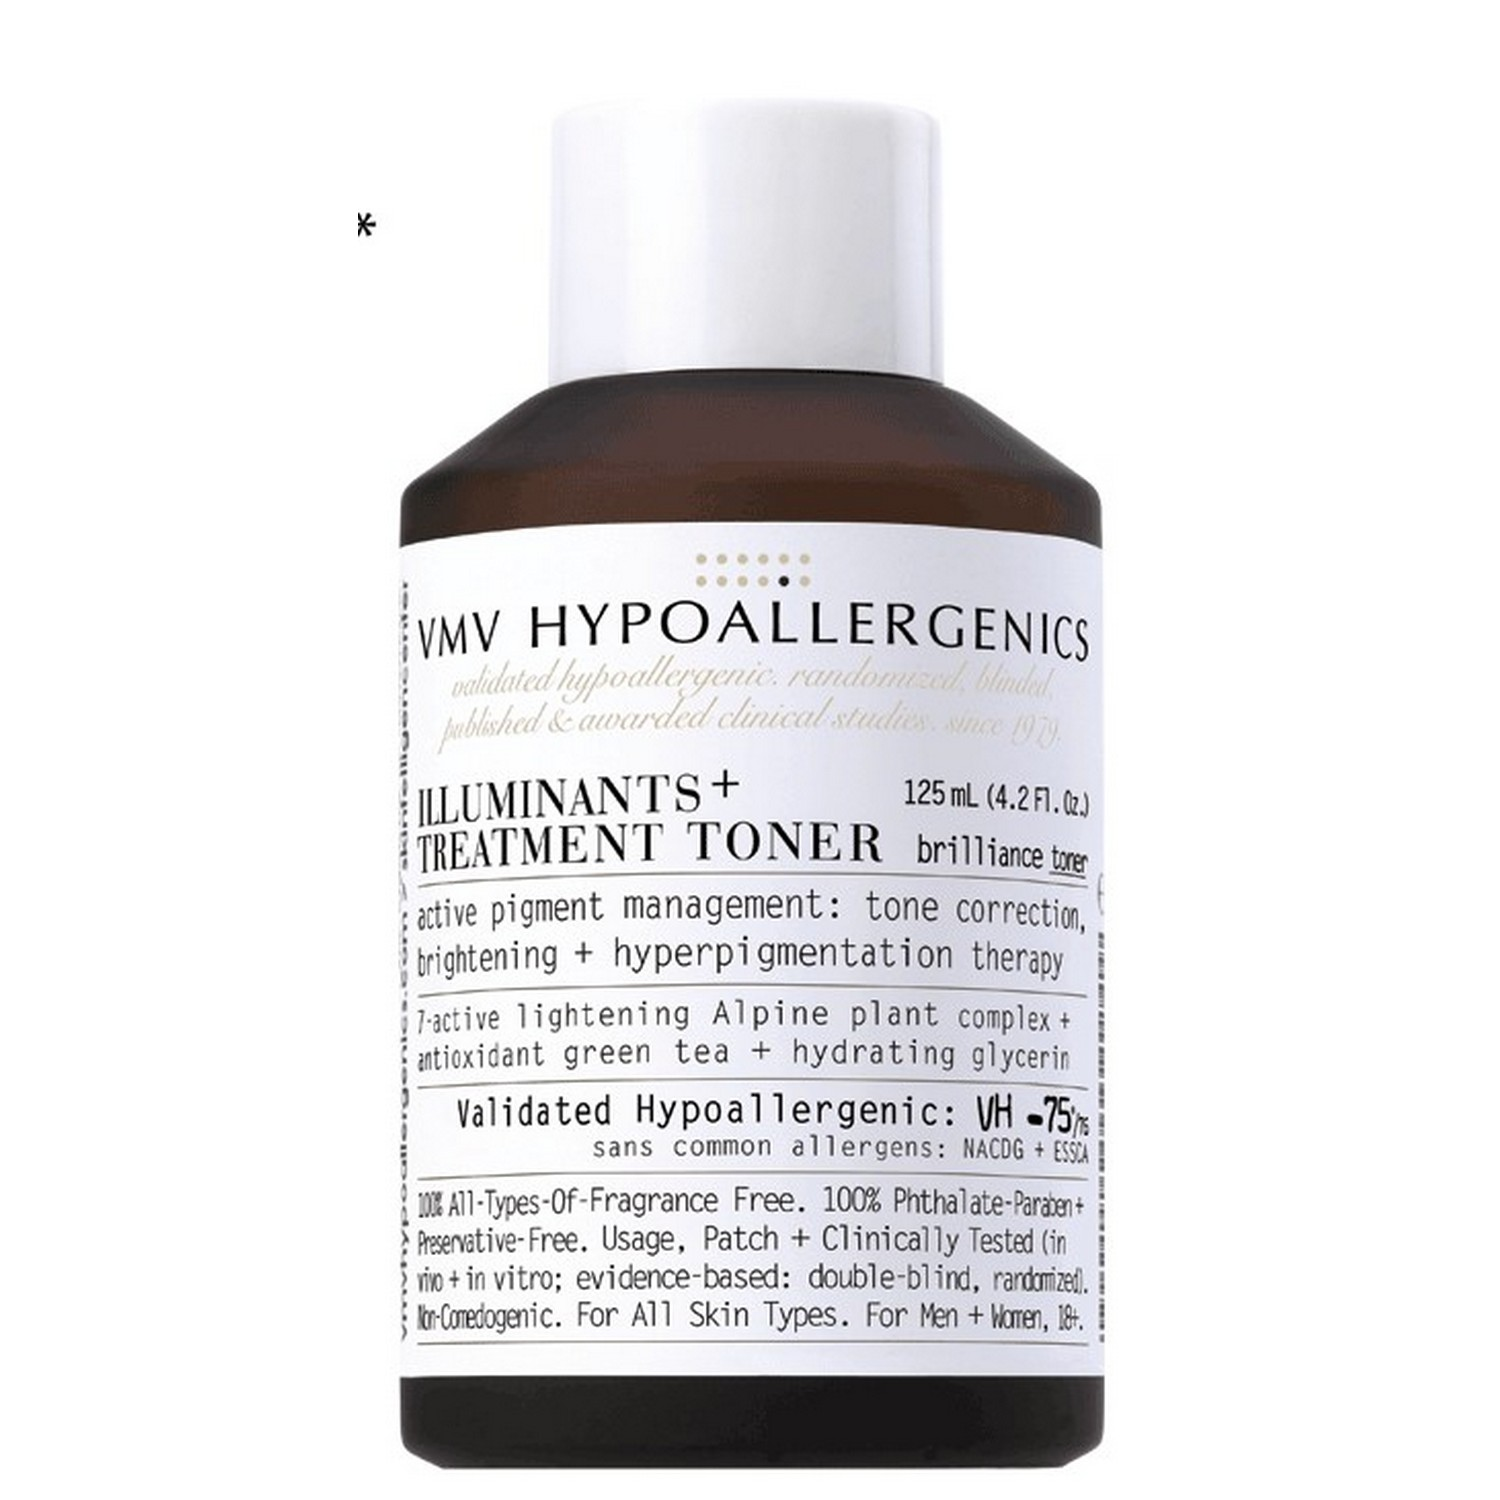 VMV Hypoallergenics ILLUMINANTS+ TREATMENT TONER (125 ml / 4.2 fl oz)